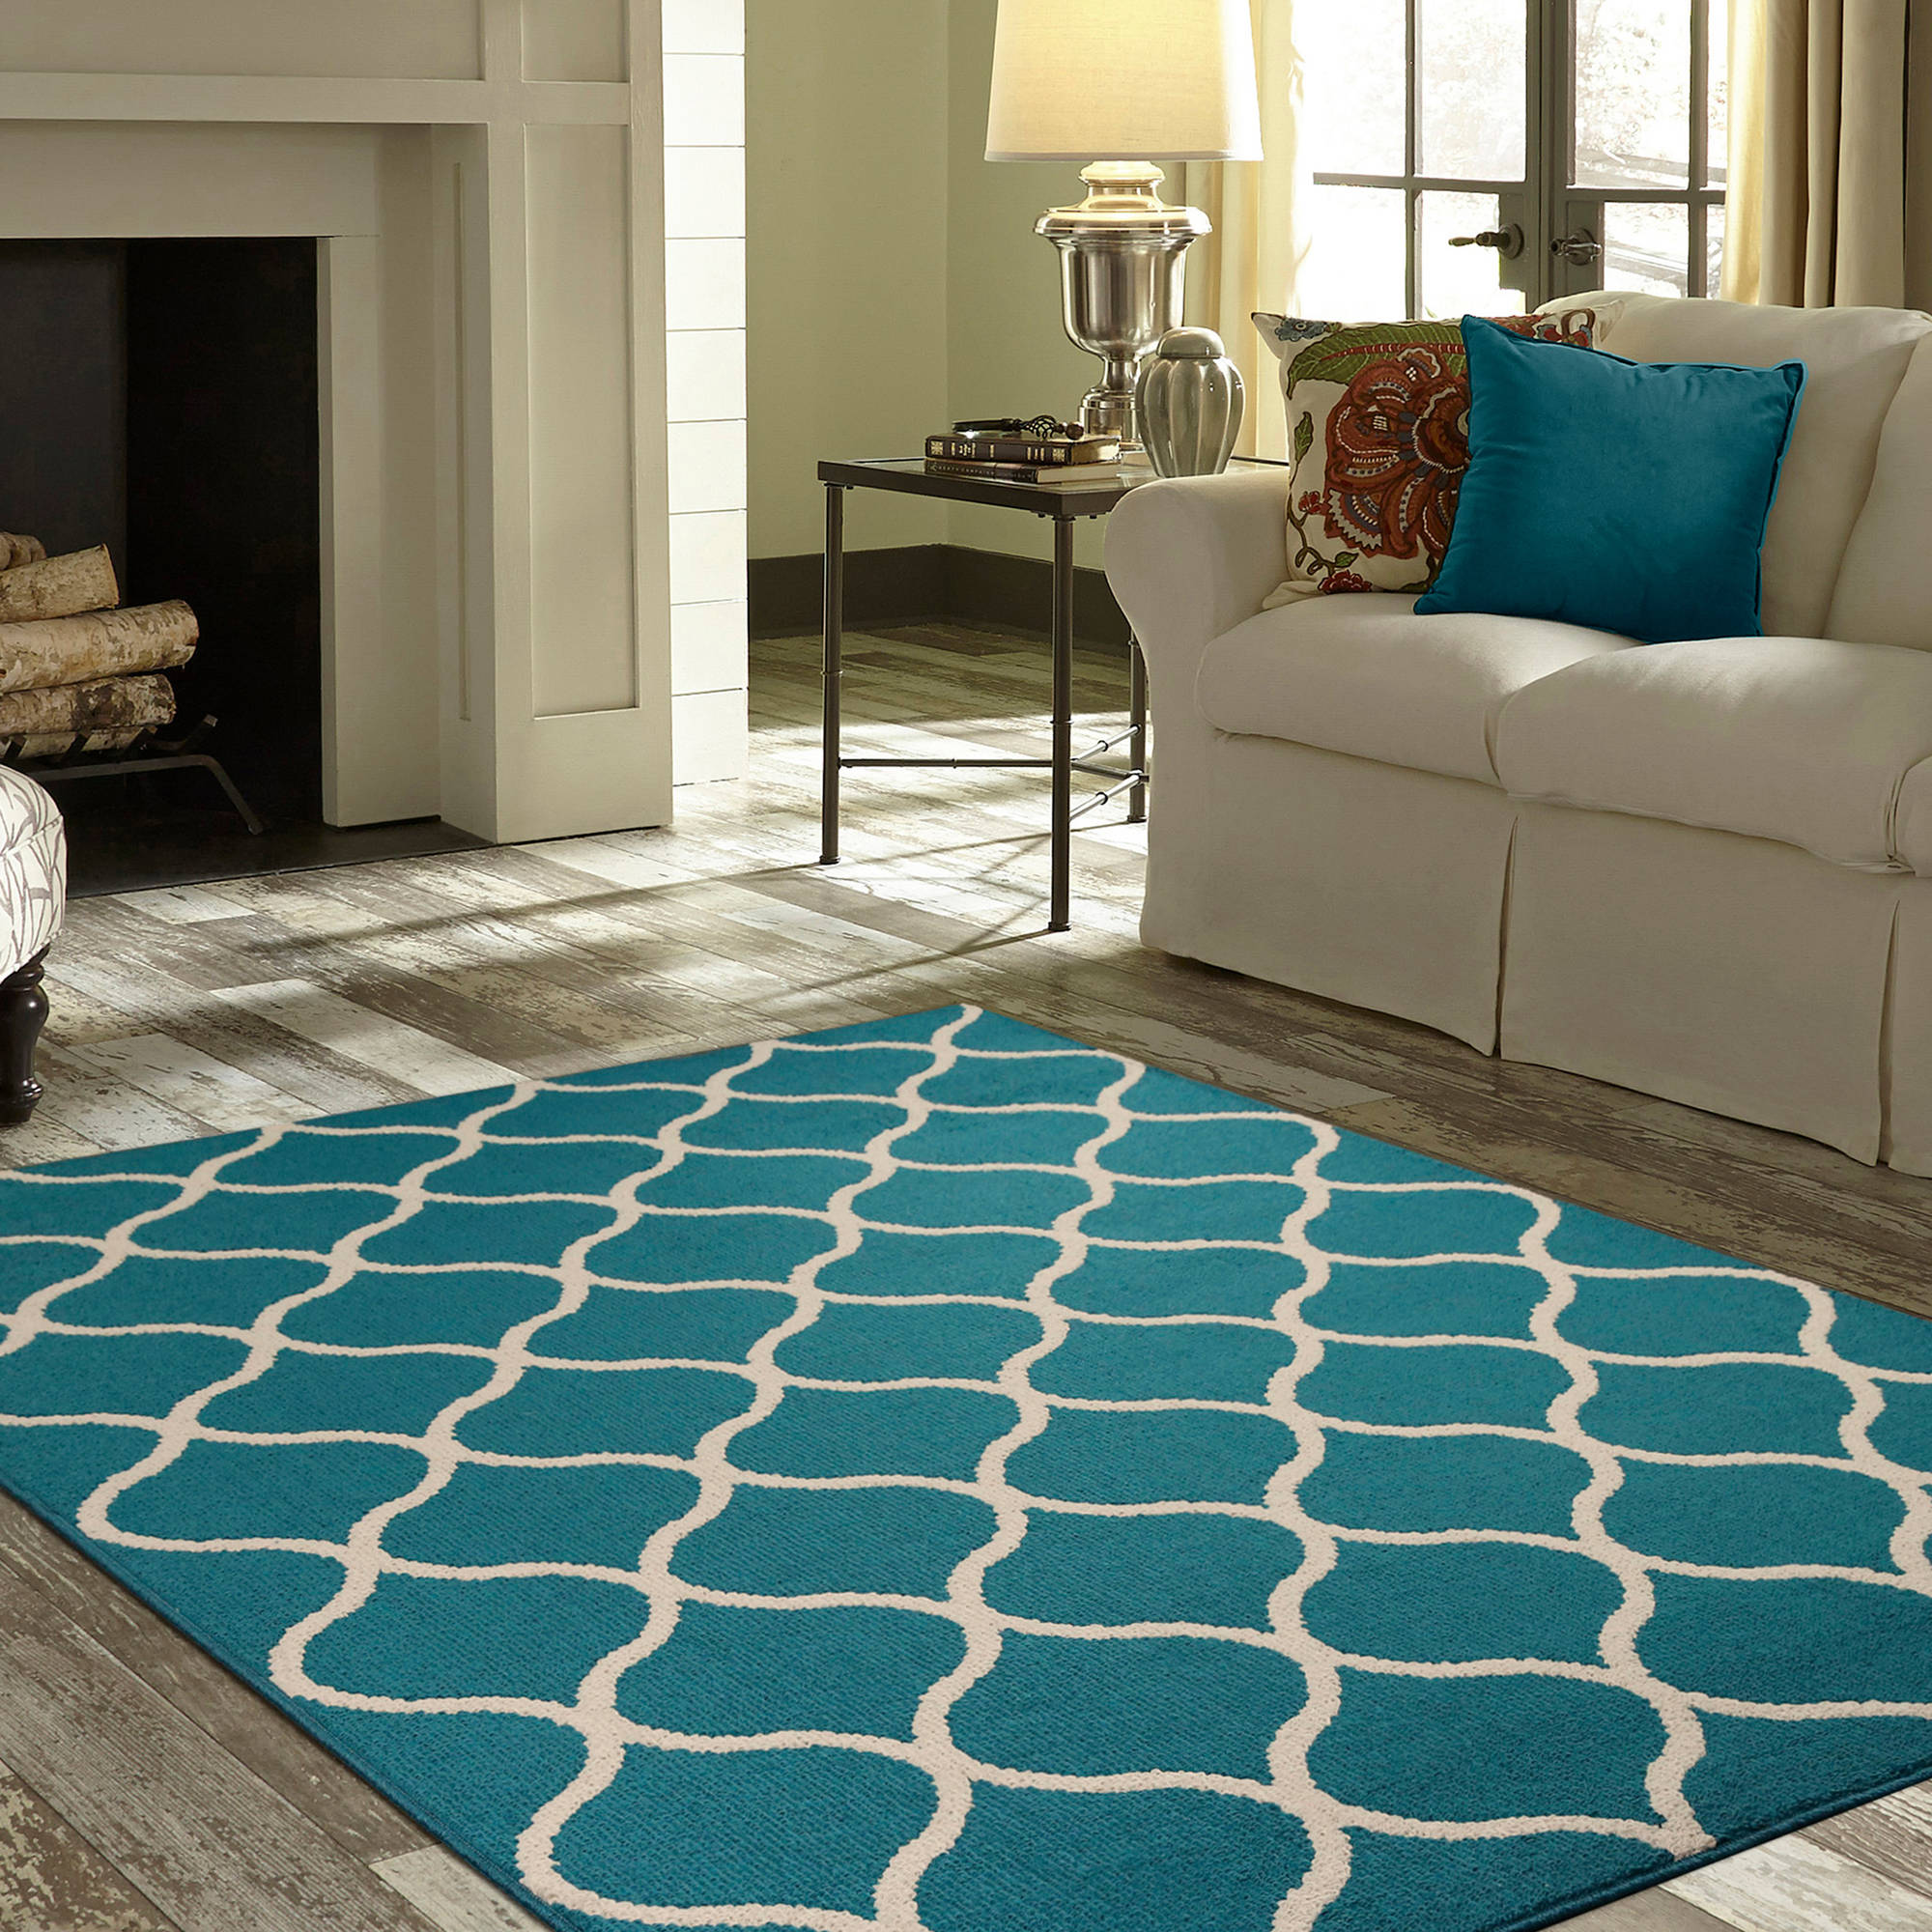 Upc 010892605245 Rugs Area Rugs Carpet Flooring Area Rug